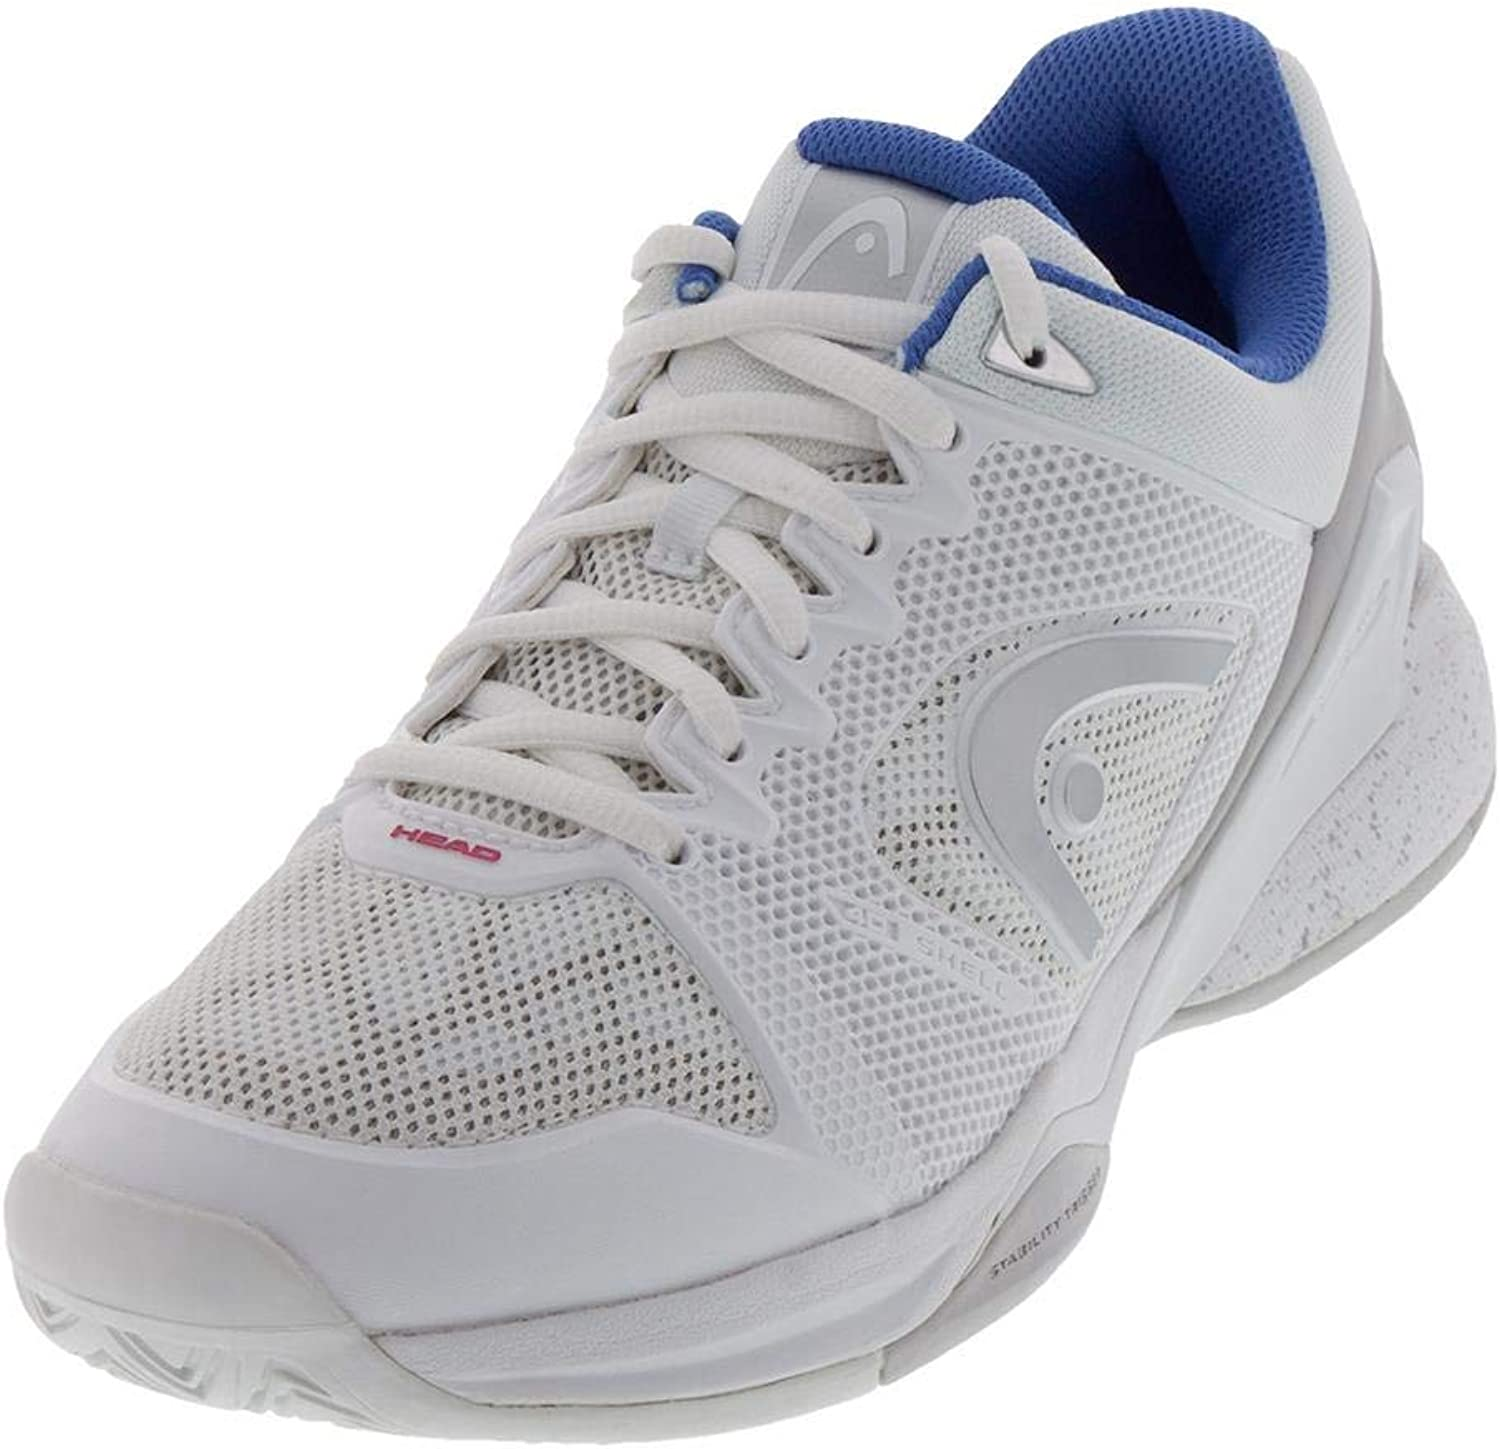 HEAD Revolt Pro 2.5 White Grey 10.0 Tennis shoes Womens